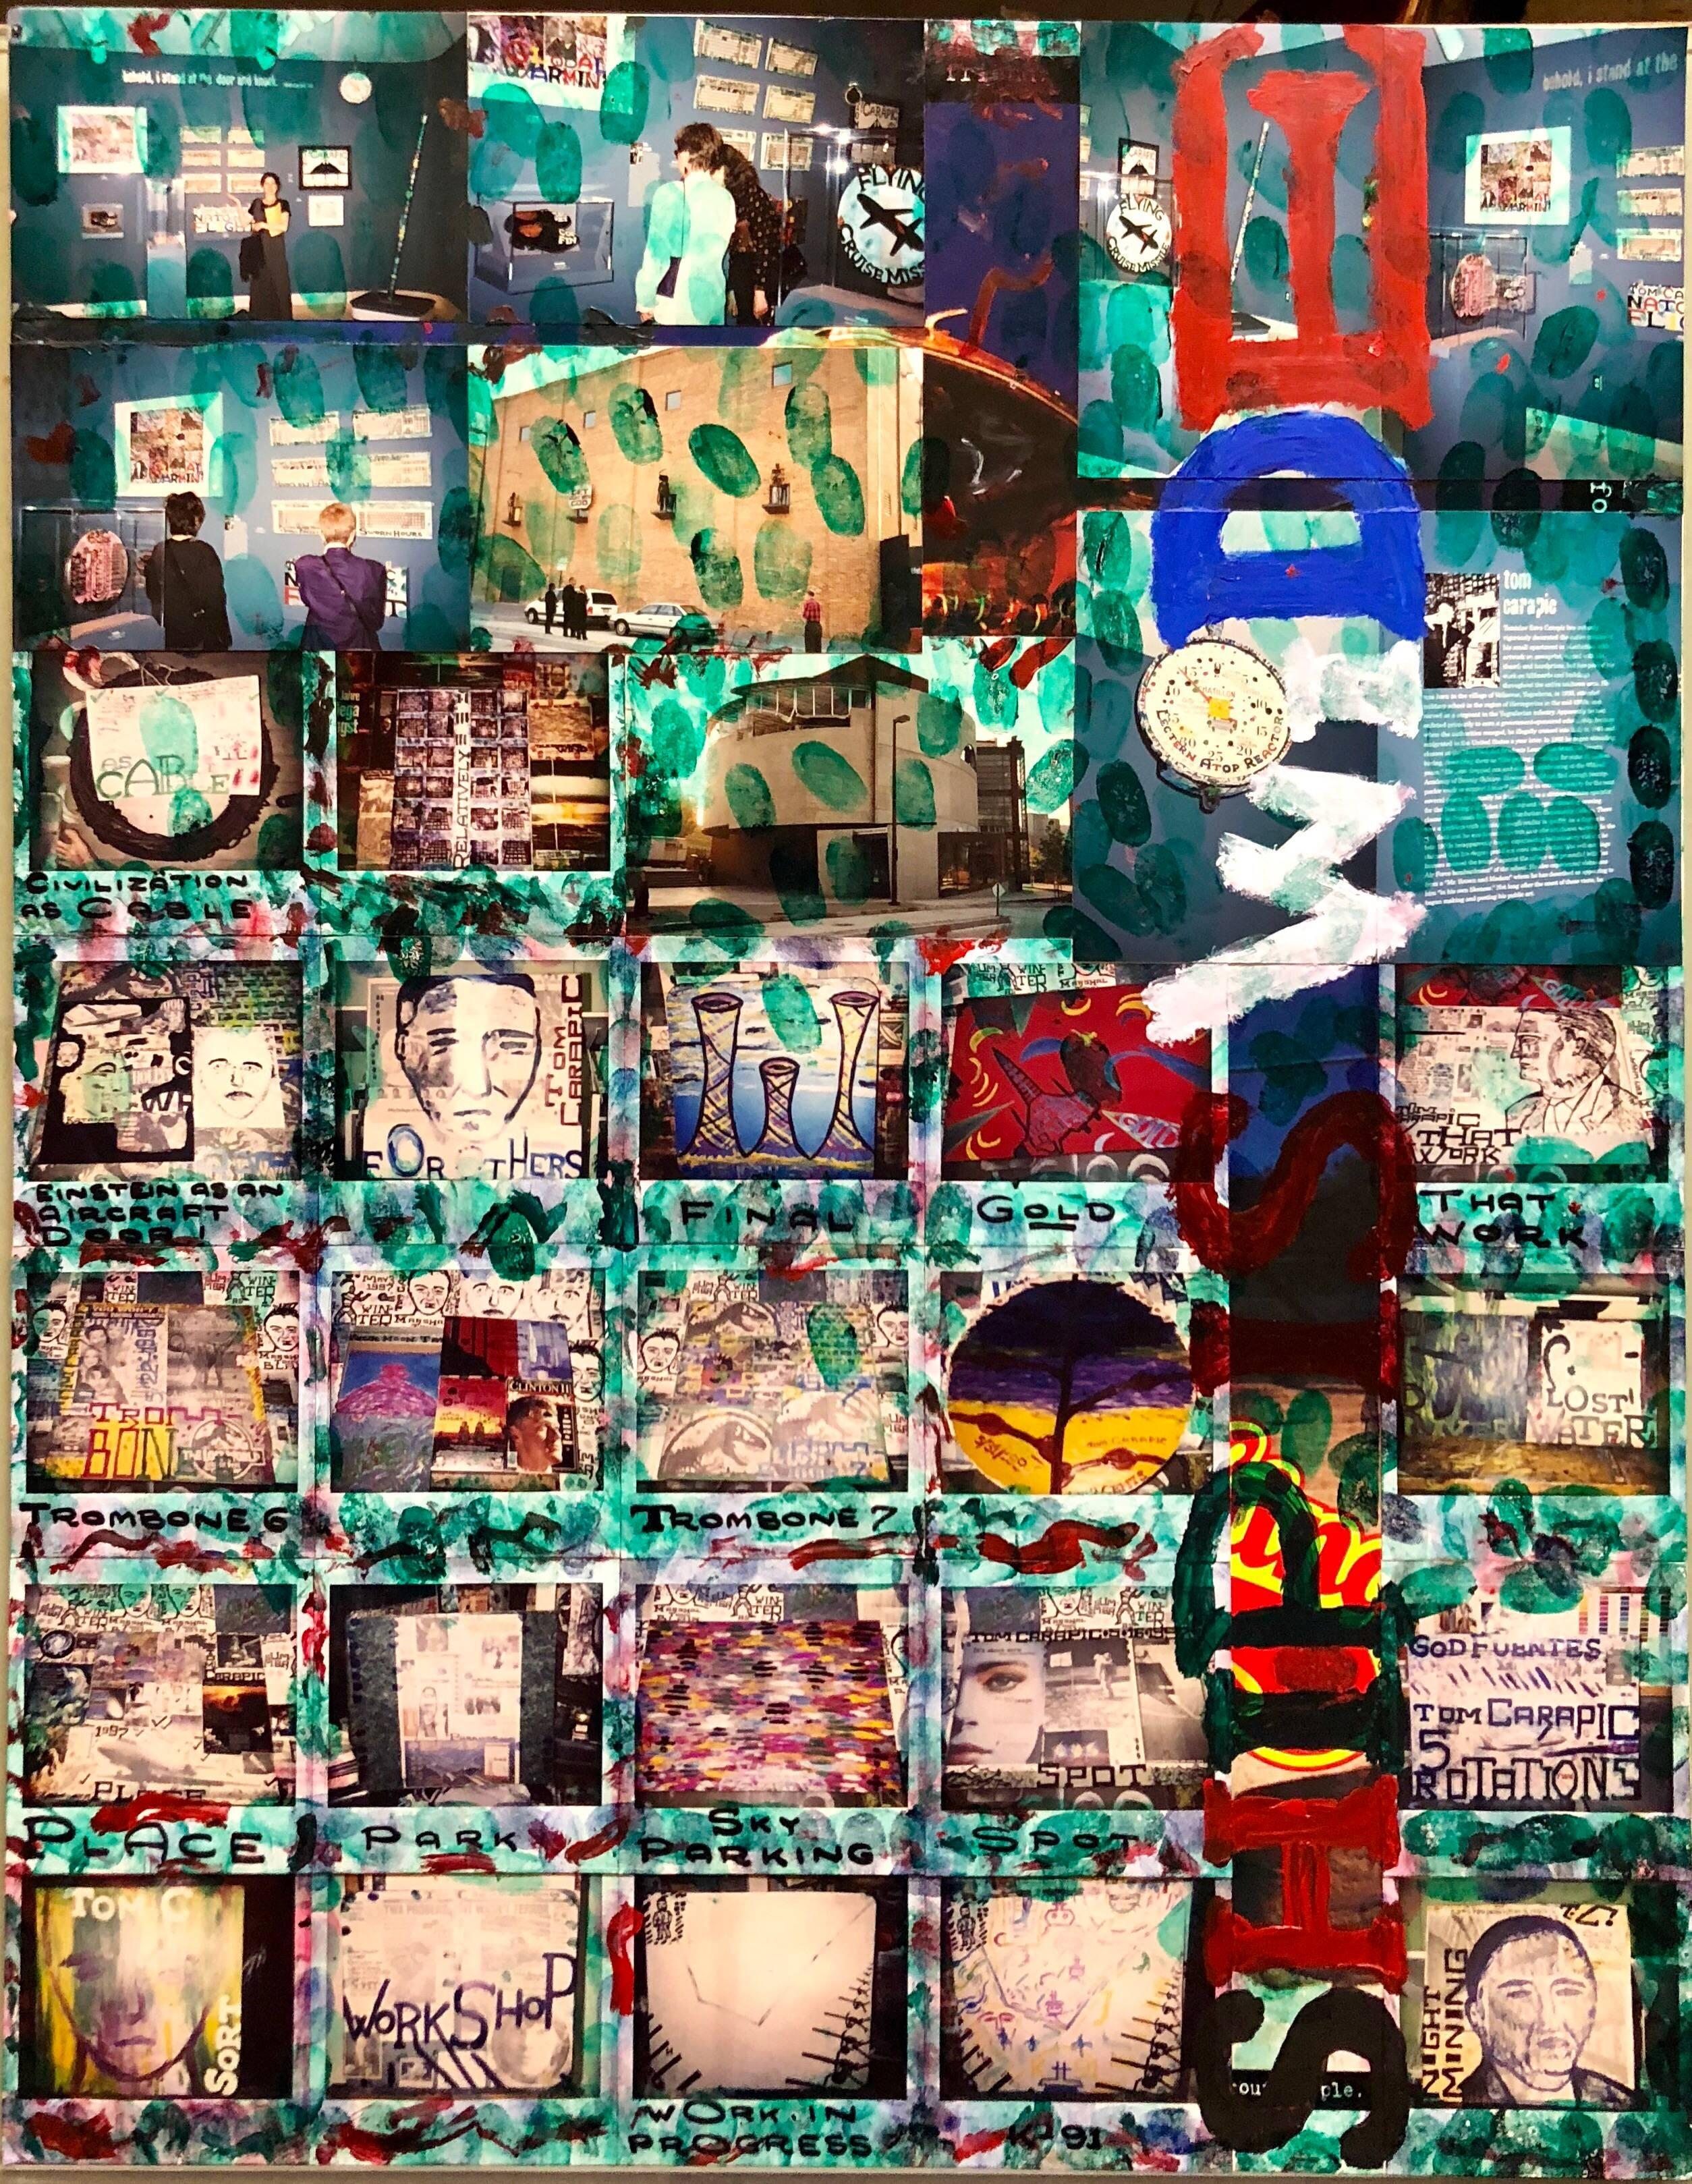 Mixed Media Outsider Visionary Art Polaroid Photo Collage Painting 2 sided